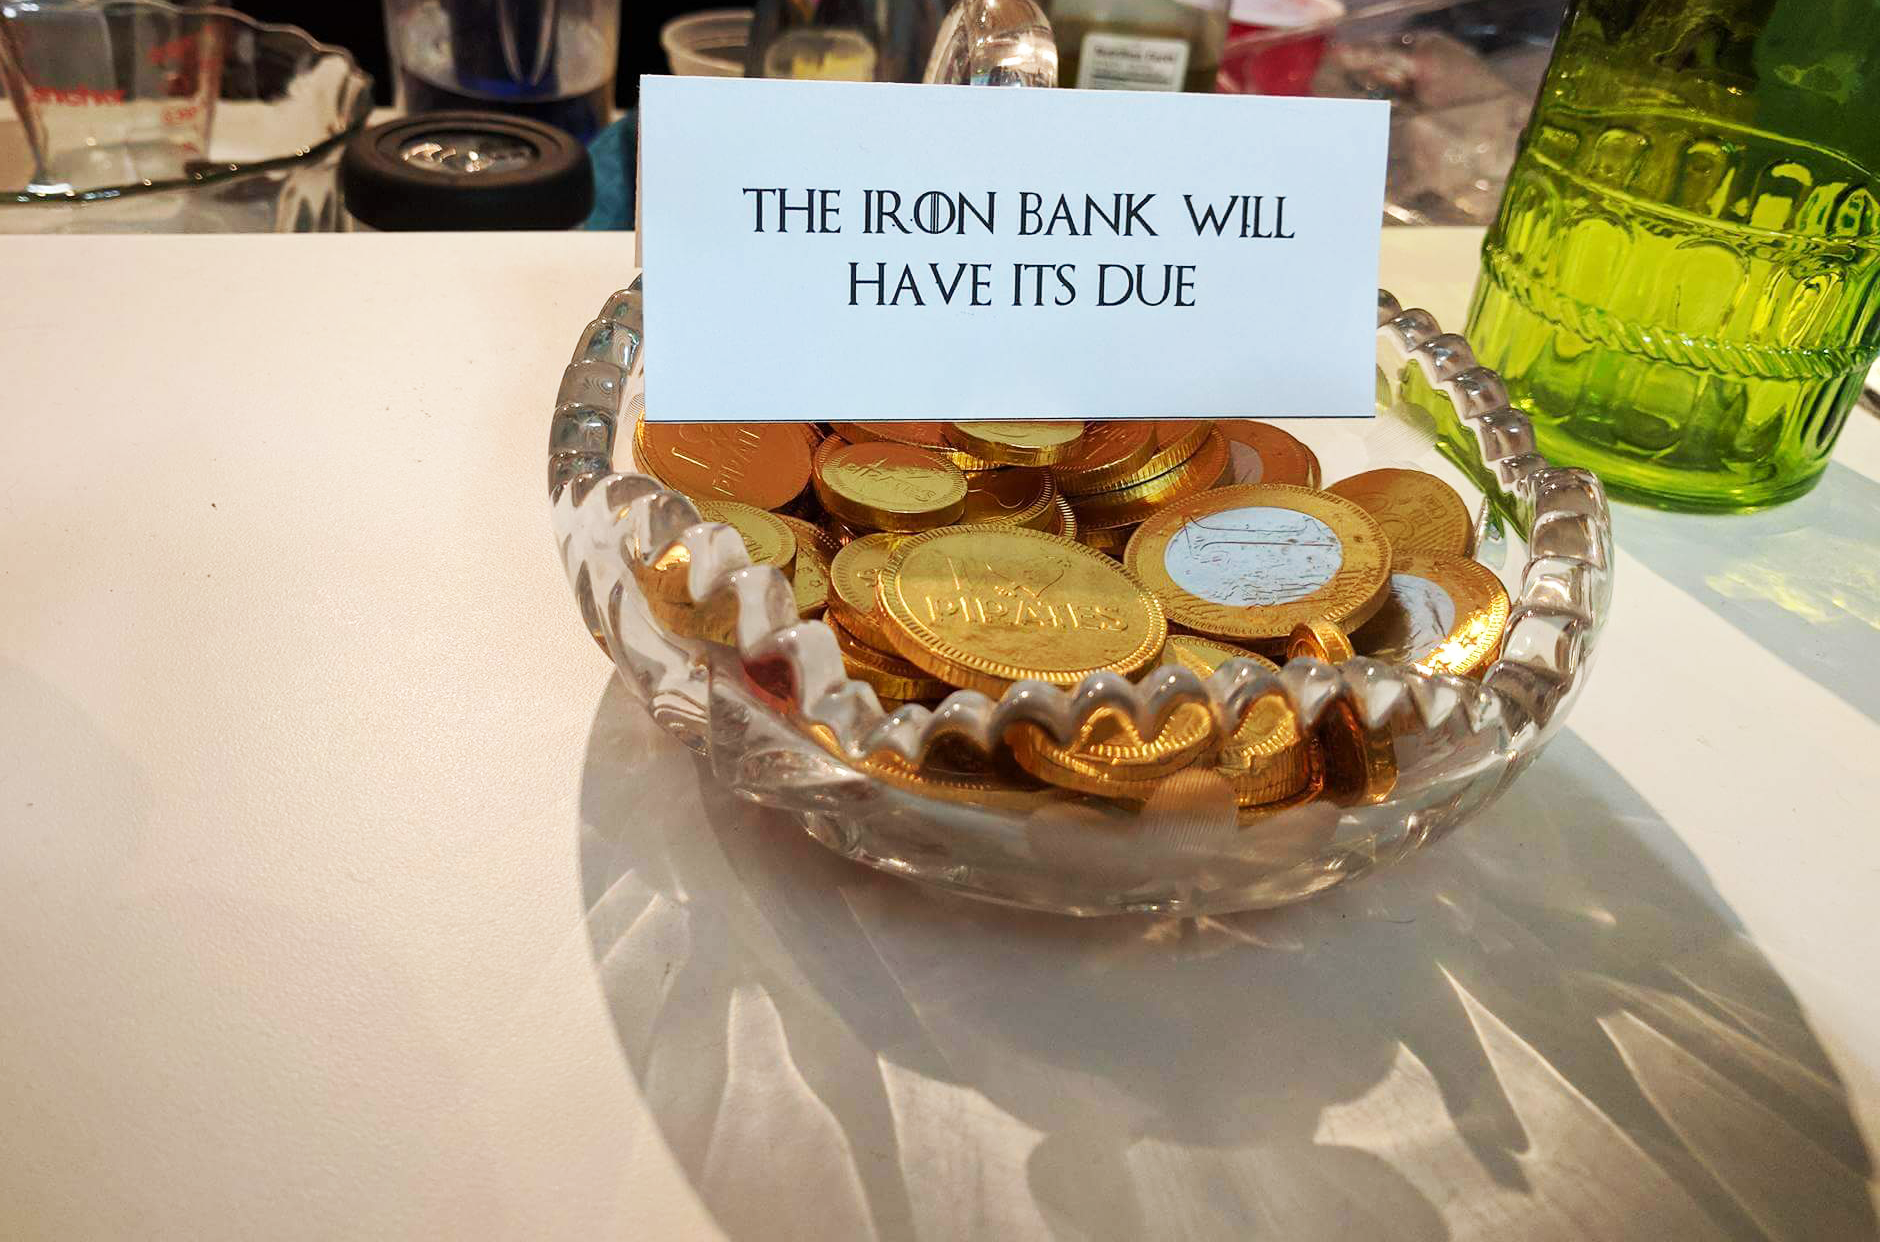 Game of Thrones party iron bank coins